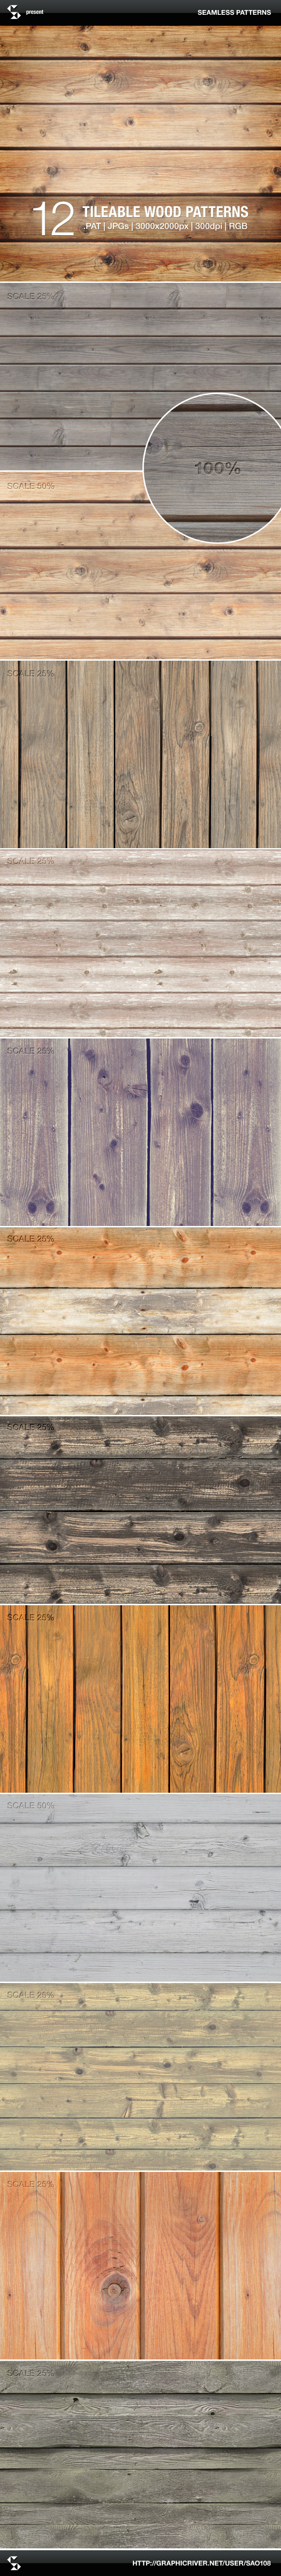 Wood Patterns - Tileable Wooden Boards - Textures / Fills / Patterns Photoshop